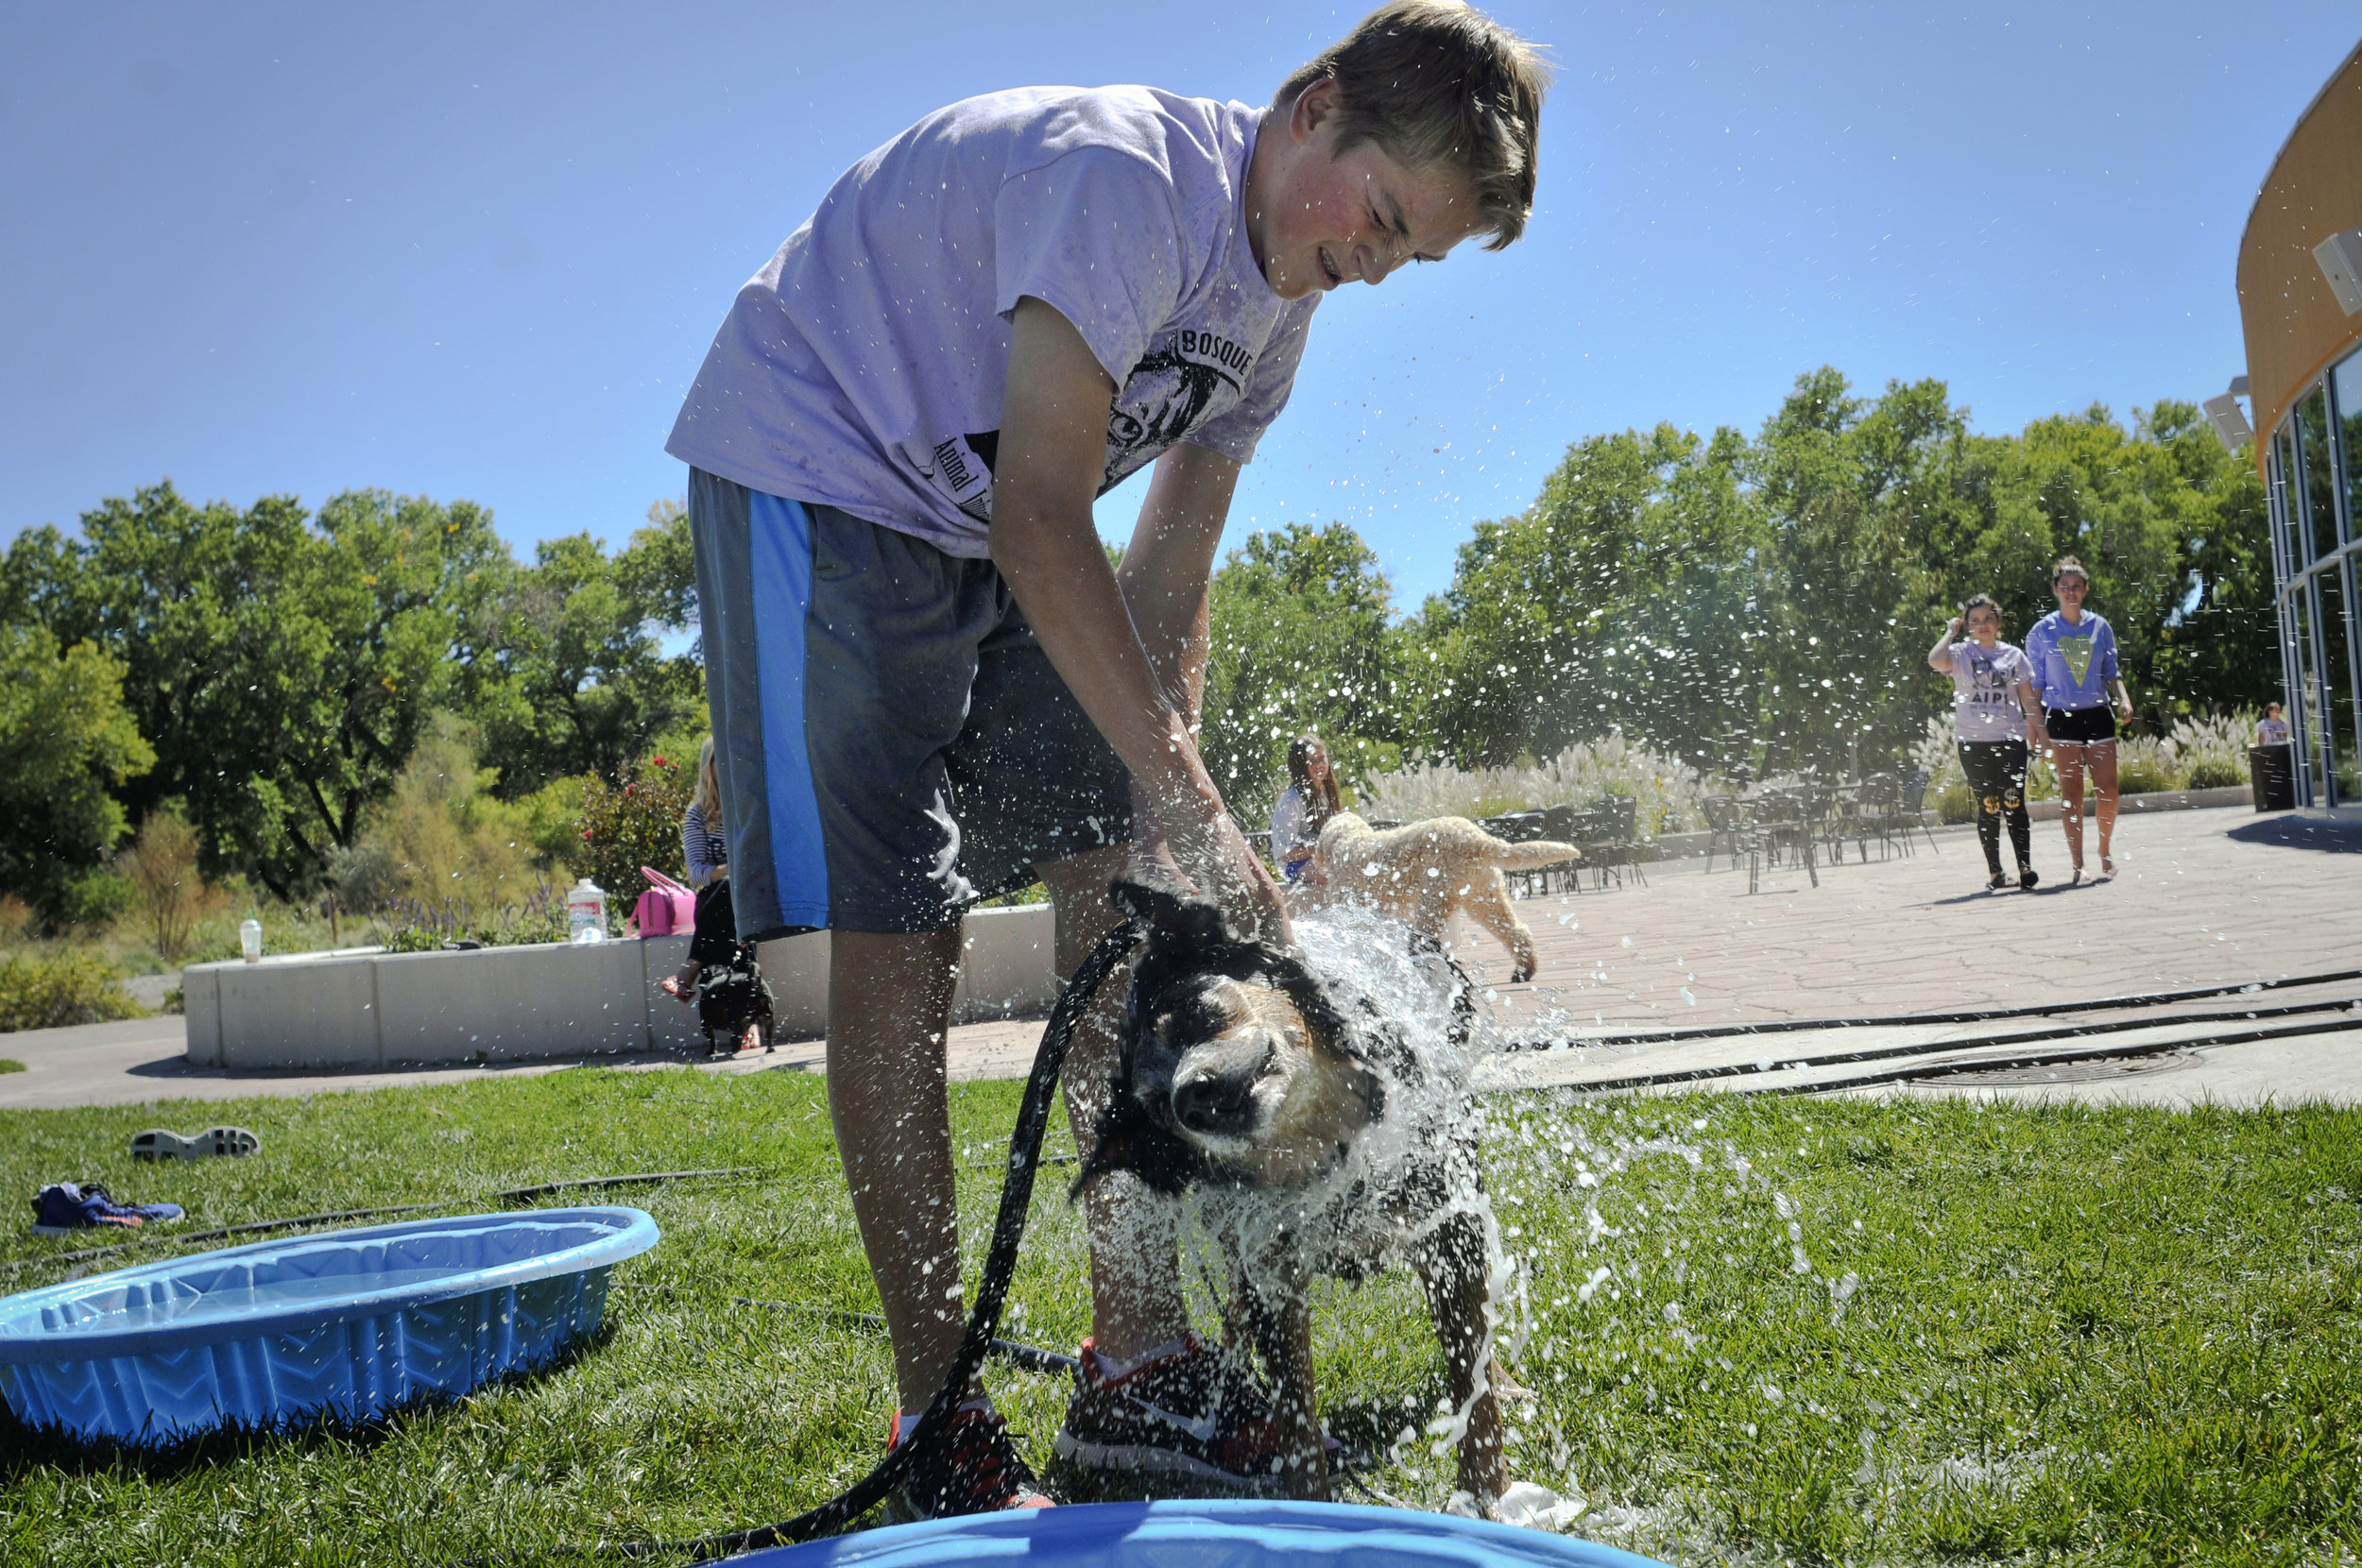 Community - At the Dawg House Playground & Salon, we strive to make a difference in the pet world by extending a helping hand to dogs in need around the community.